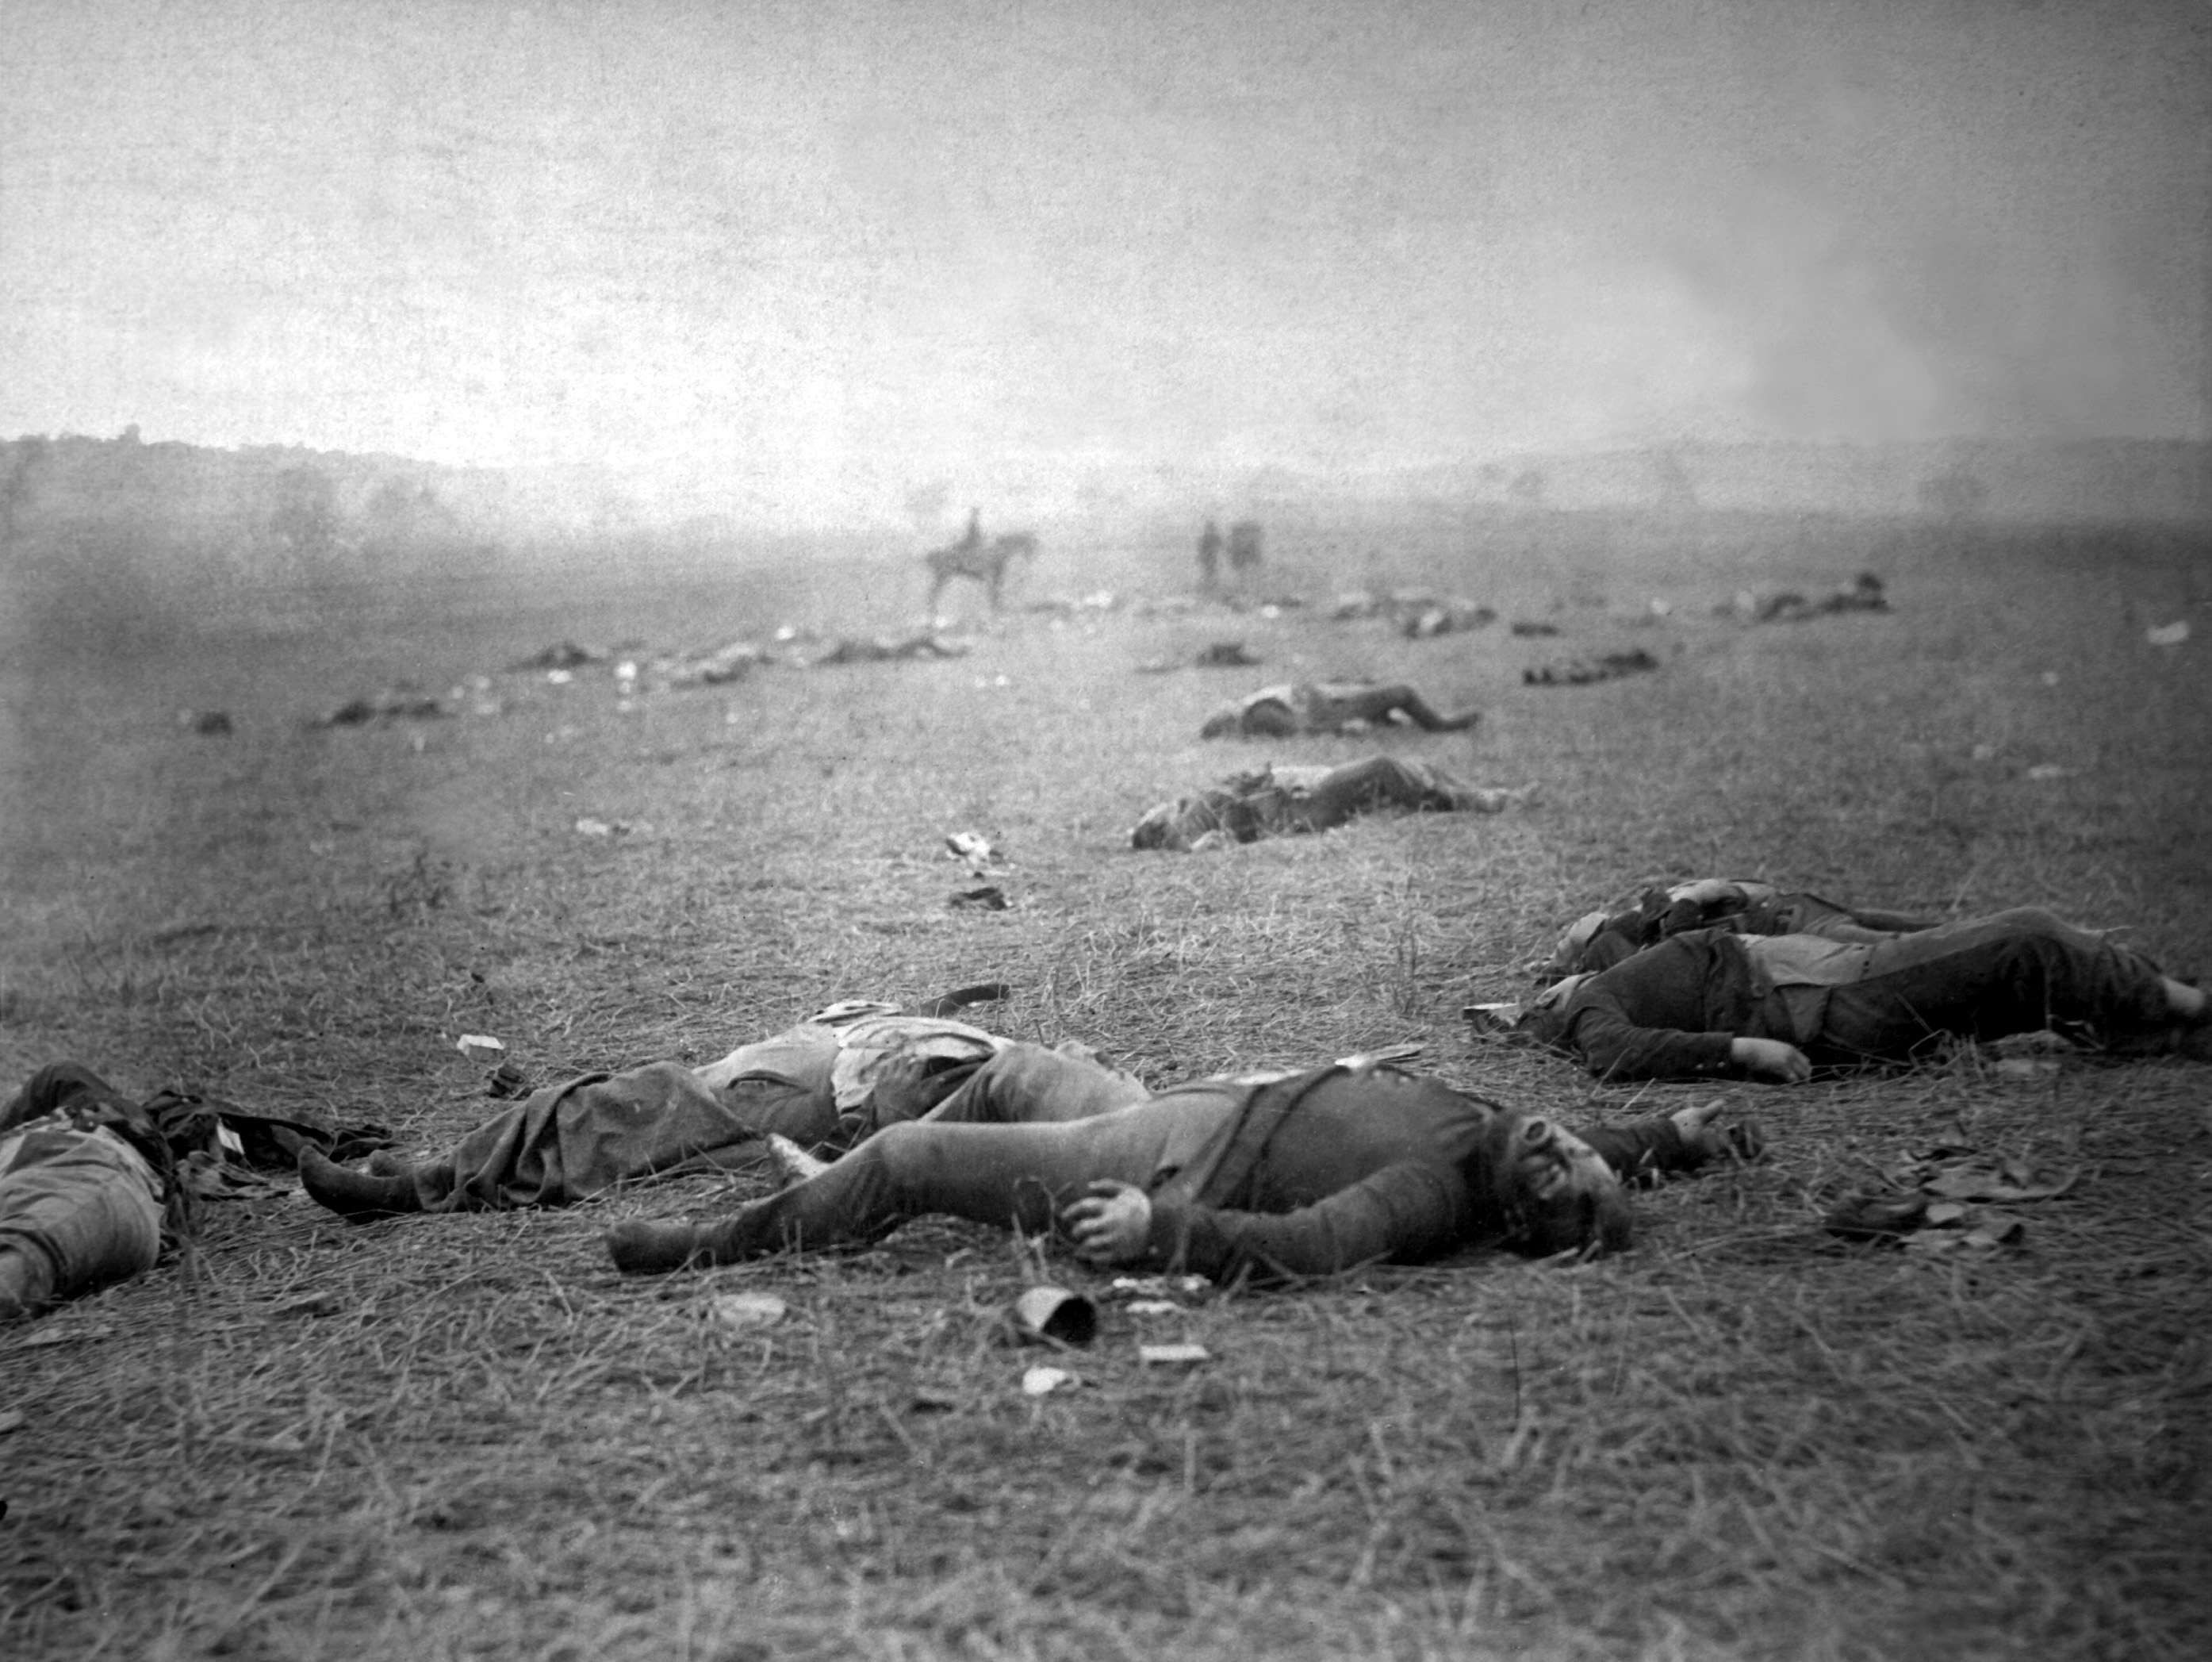 Union soldiers at Gettysburg